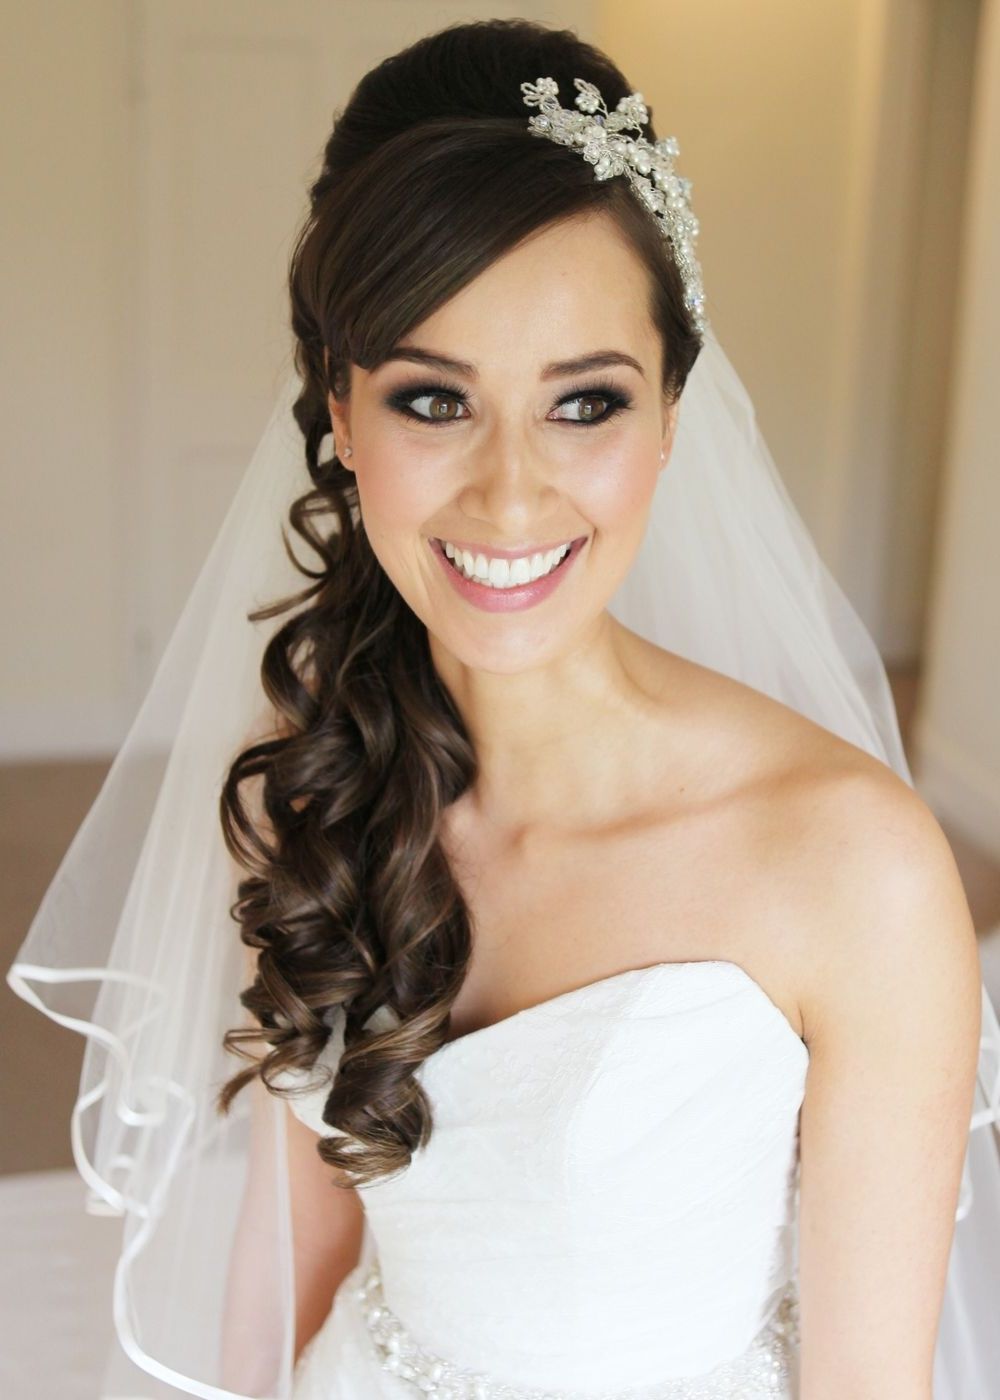 Favorite Wedding Hairstyles For Long Hair Without Veil With Regard To 15 Fabulous Half Up Half Down Wedding Hairstyles (View 7 of 15)